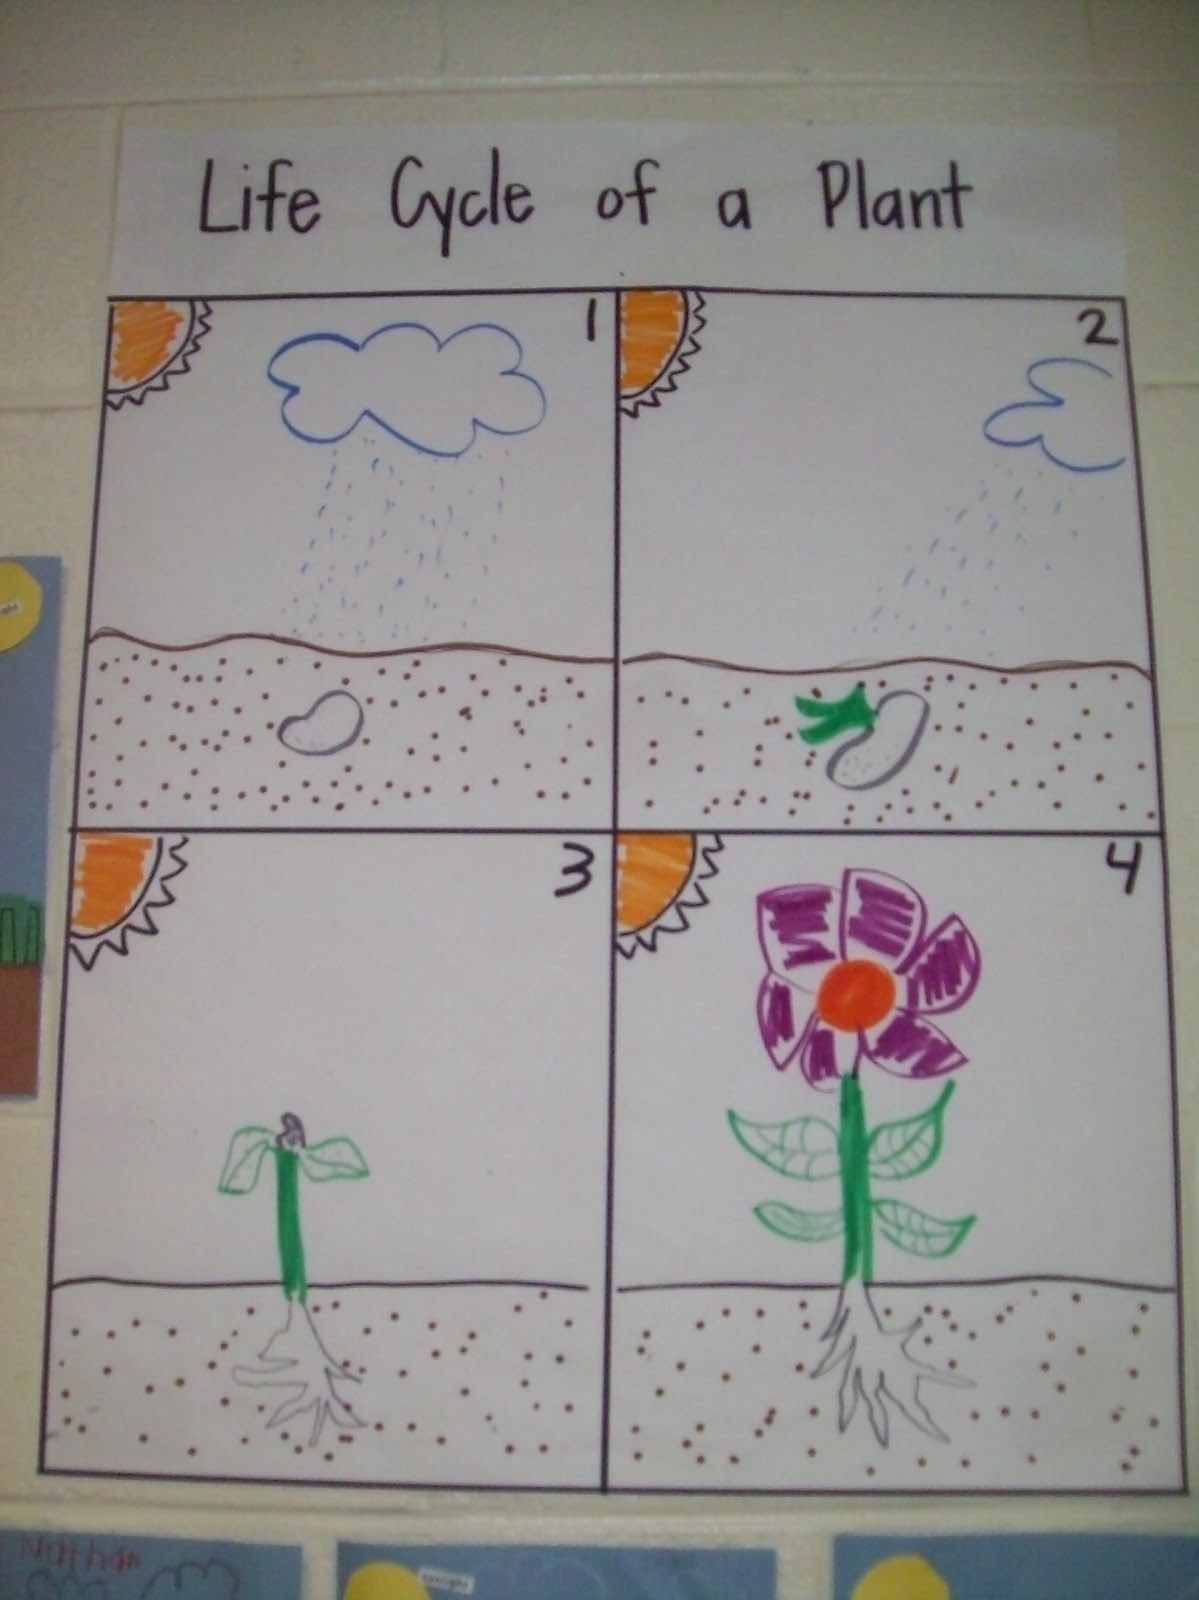 Plant Life Cycle With Images